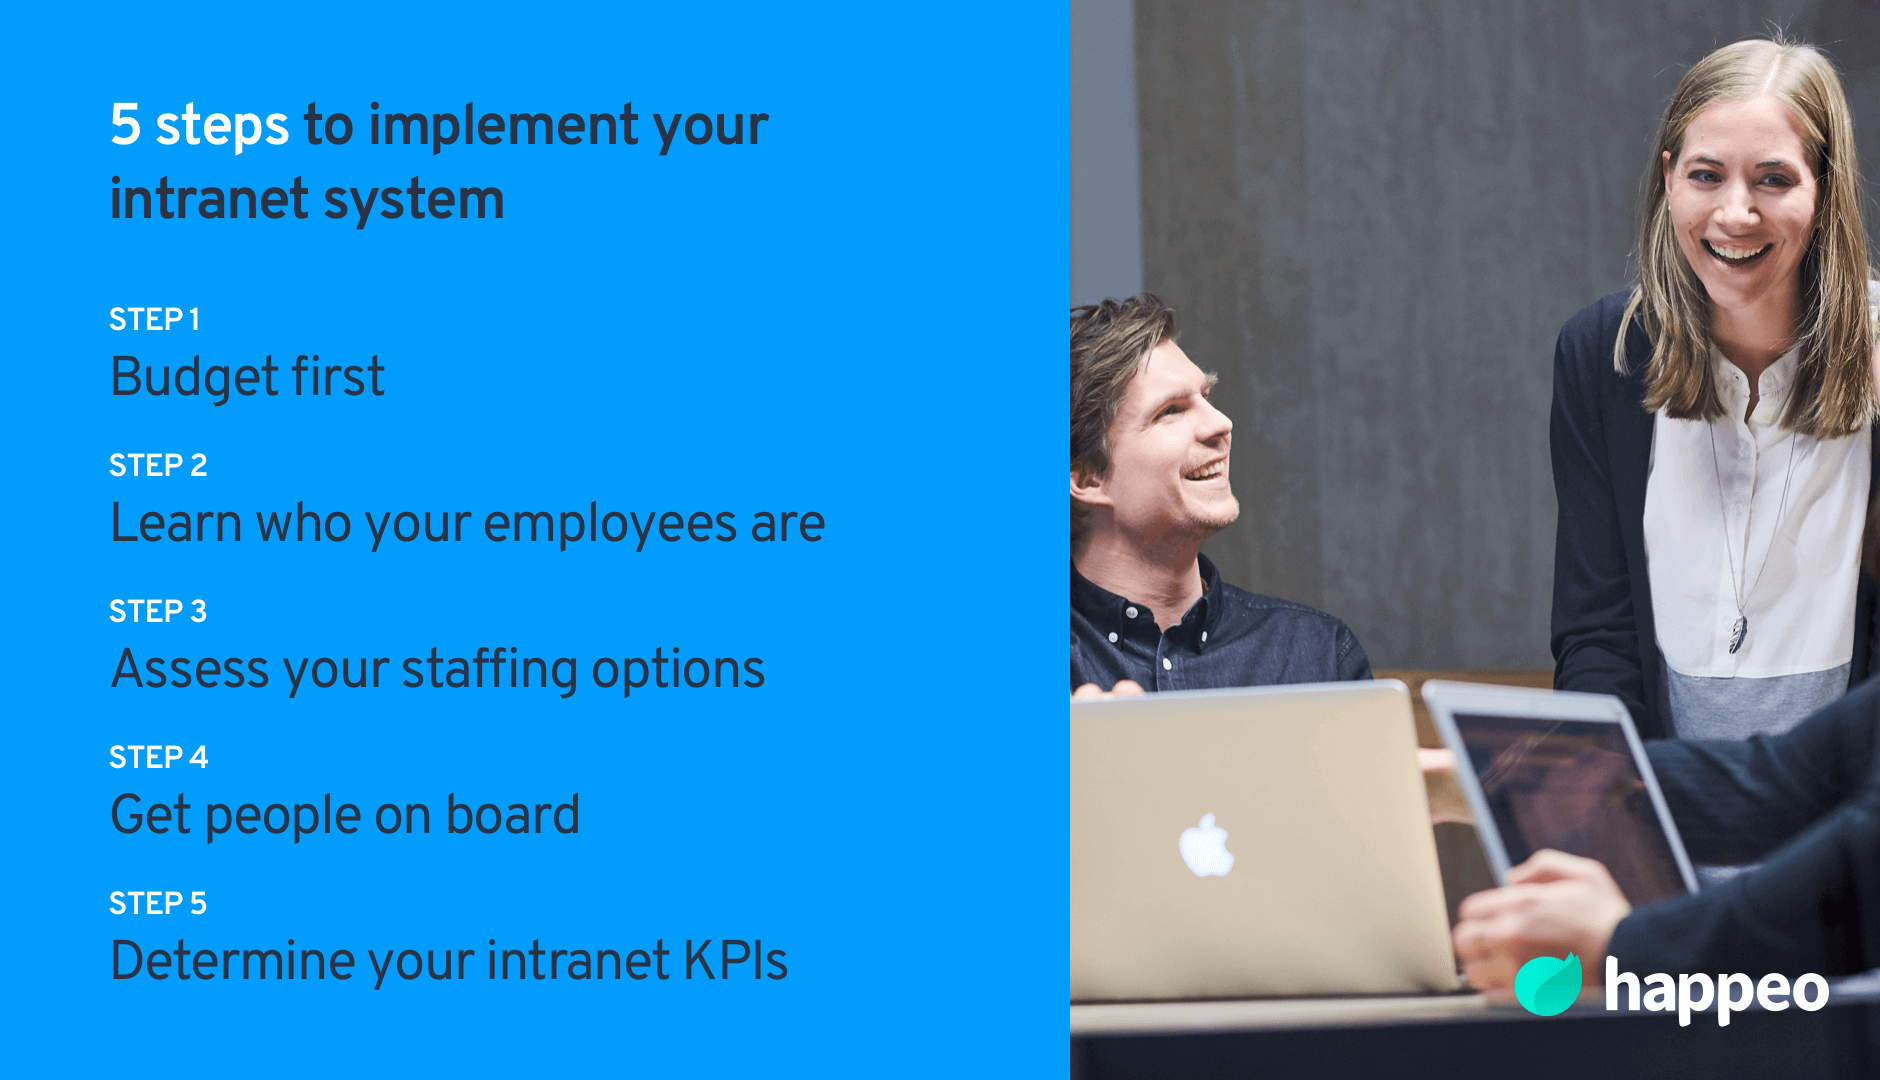 5 steps to implement your intranet system